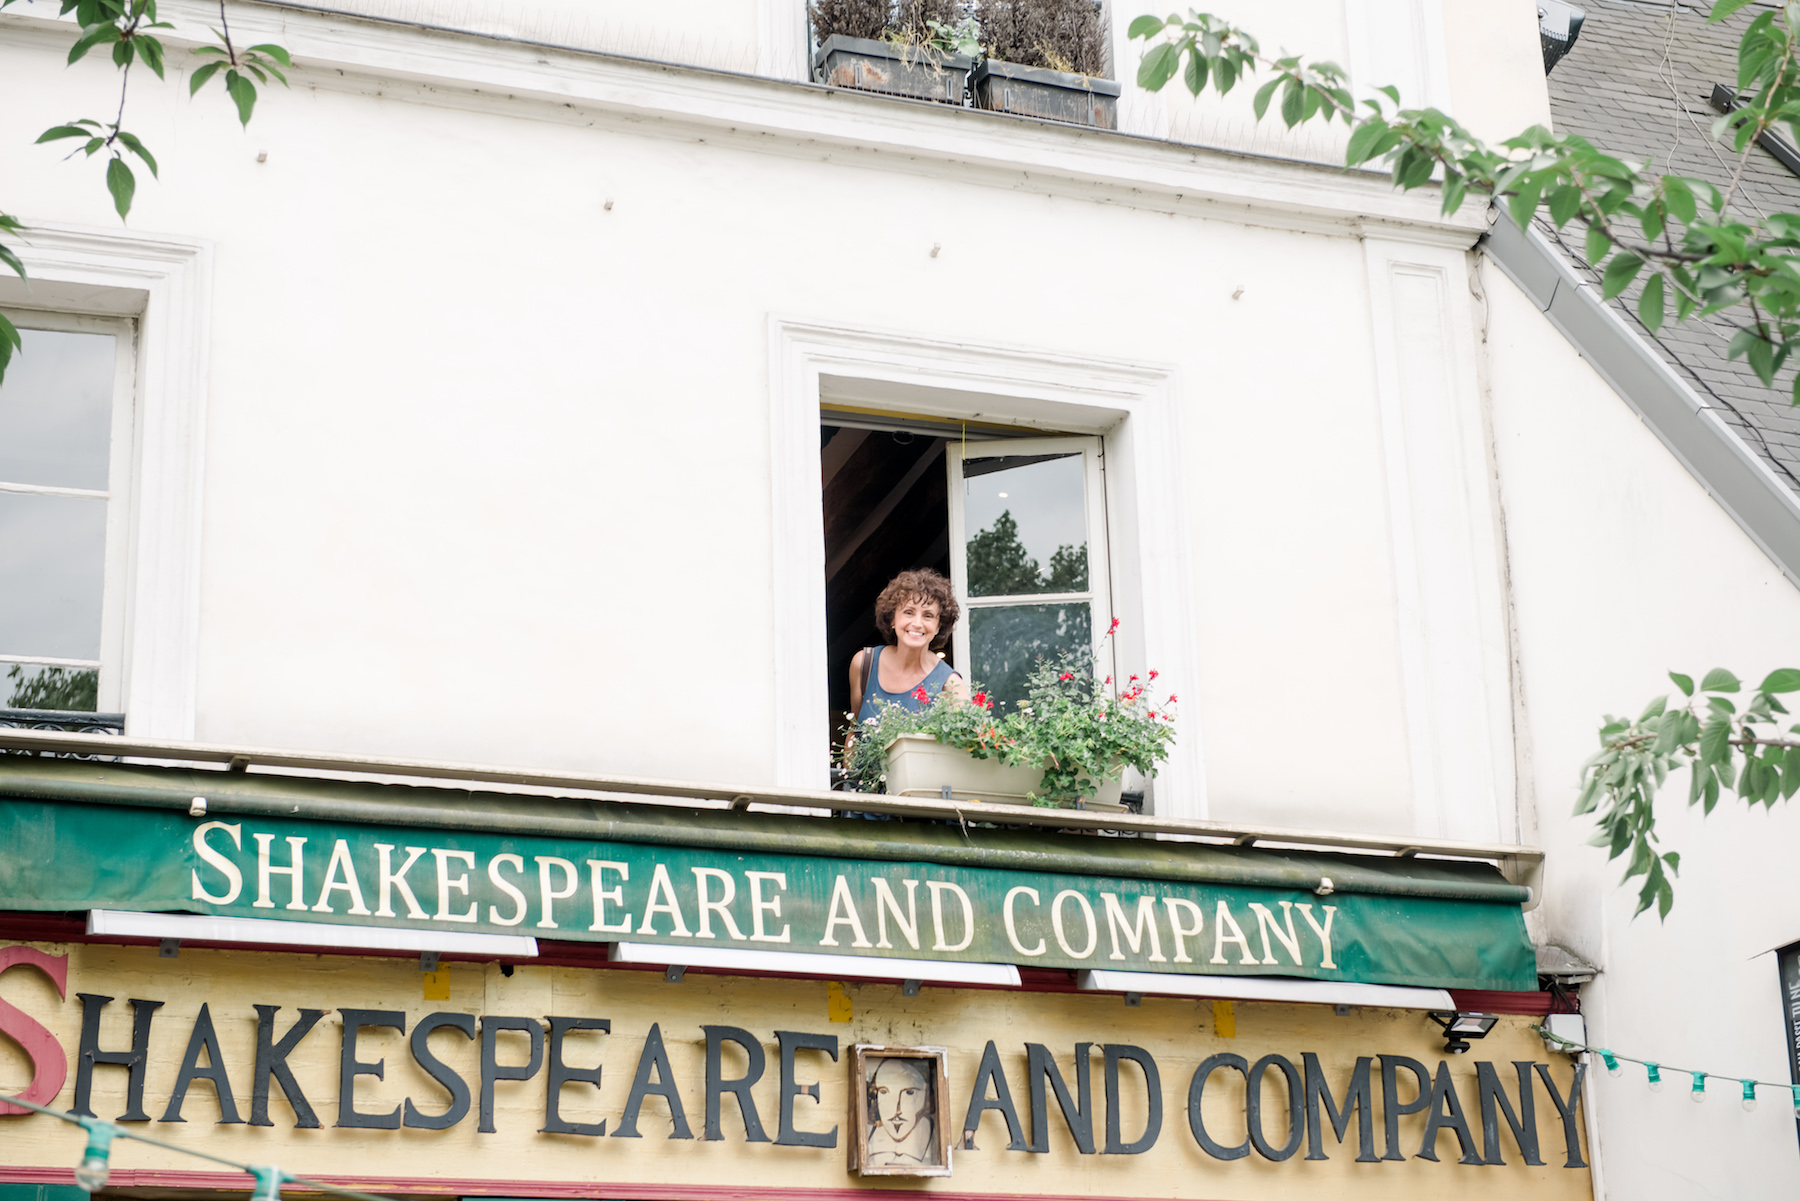 Dreama-Shakespeare and Company, Paris - https://dreamatolleperry.com